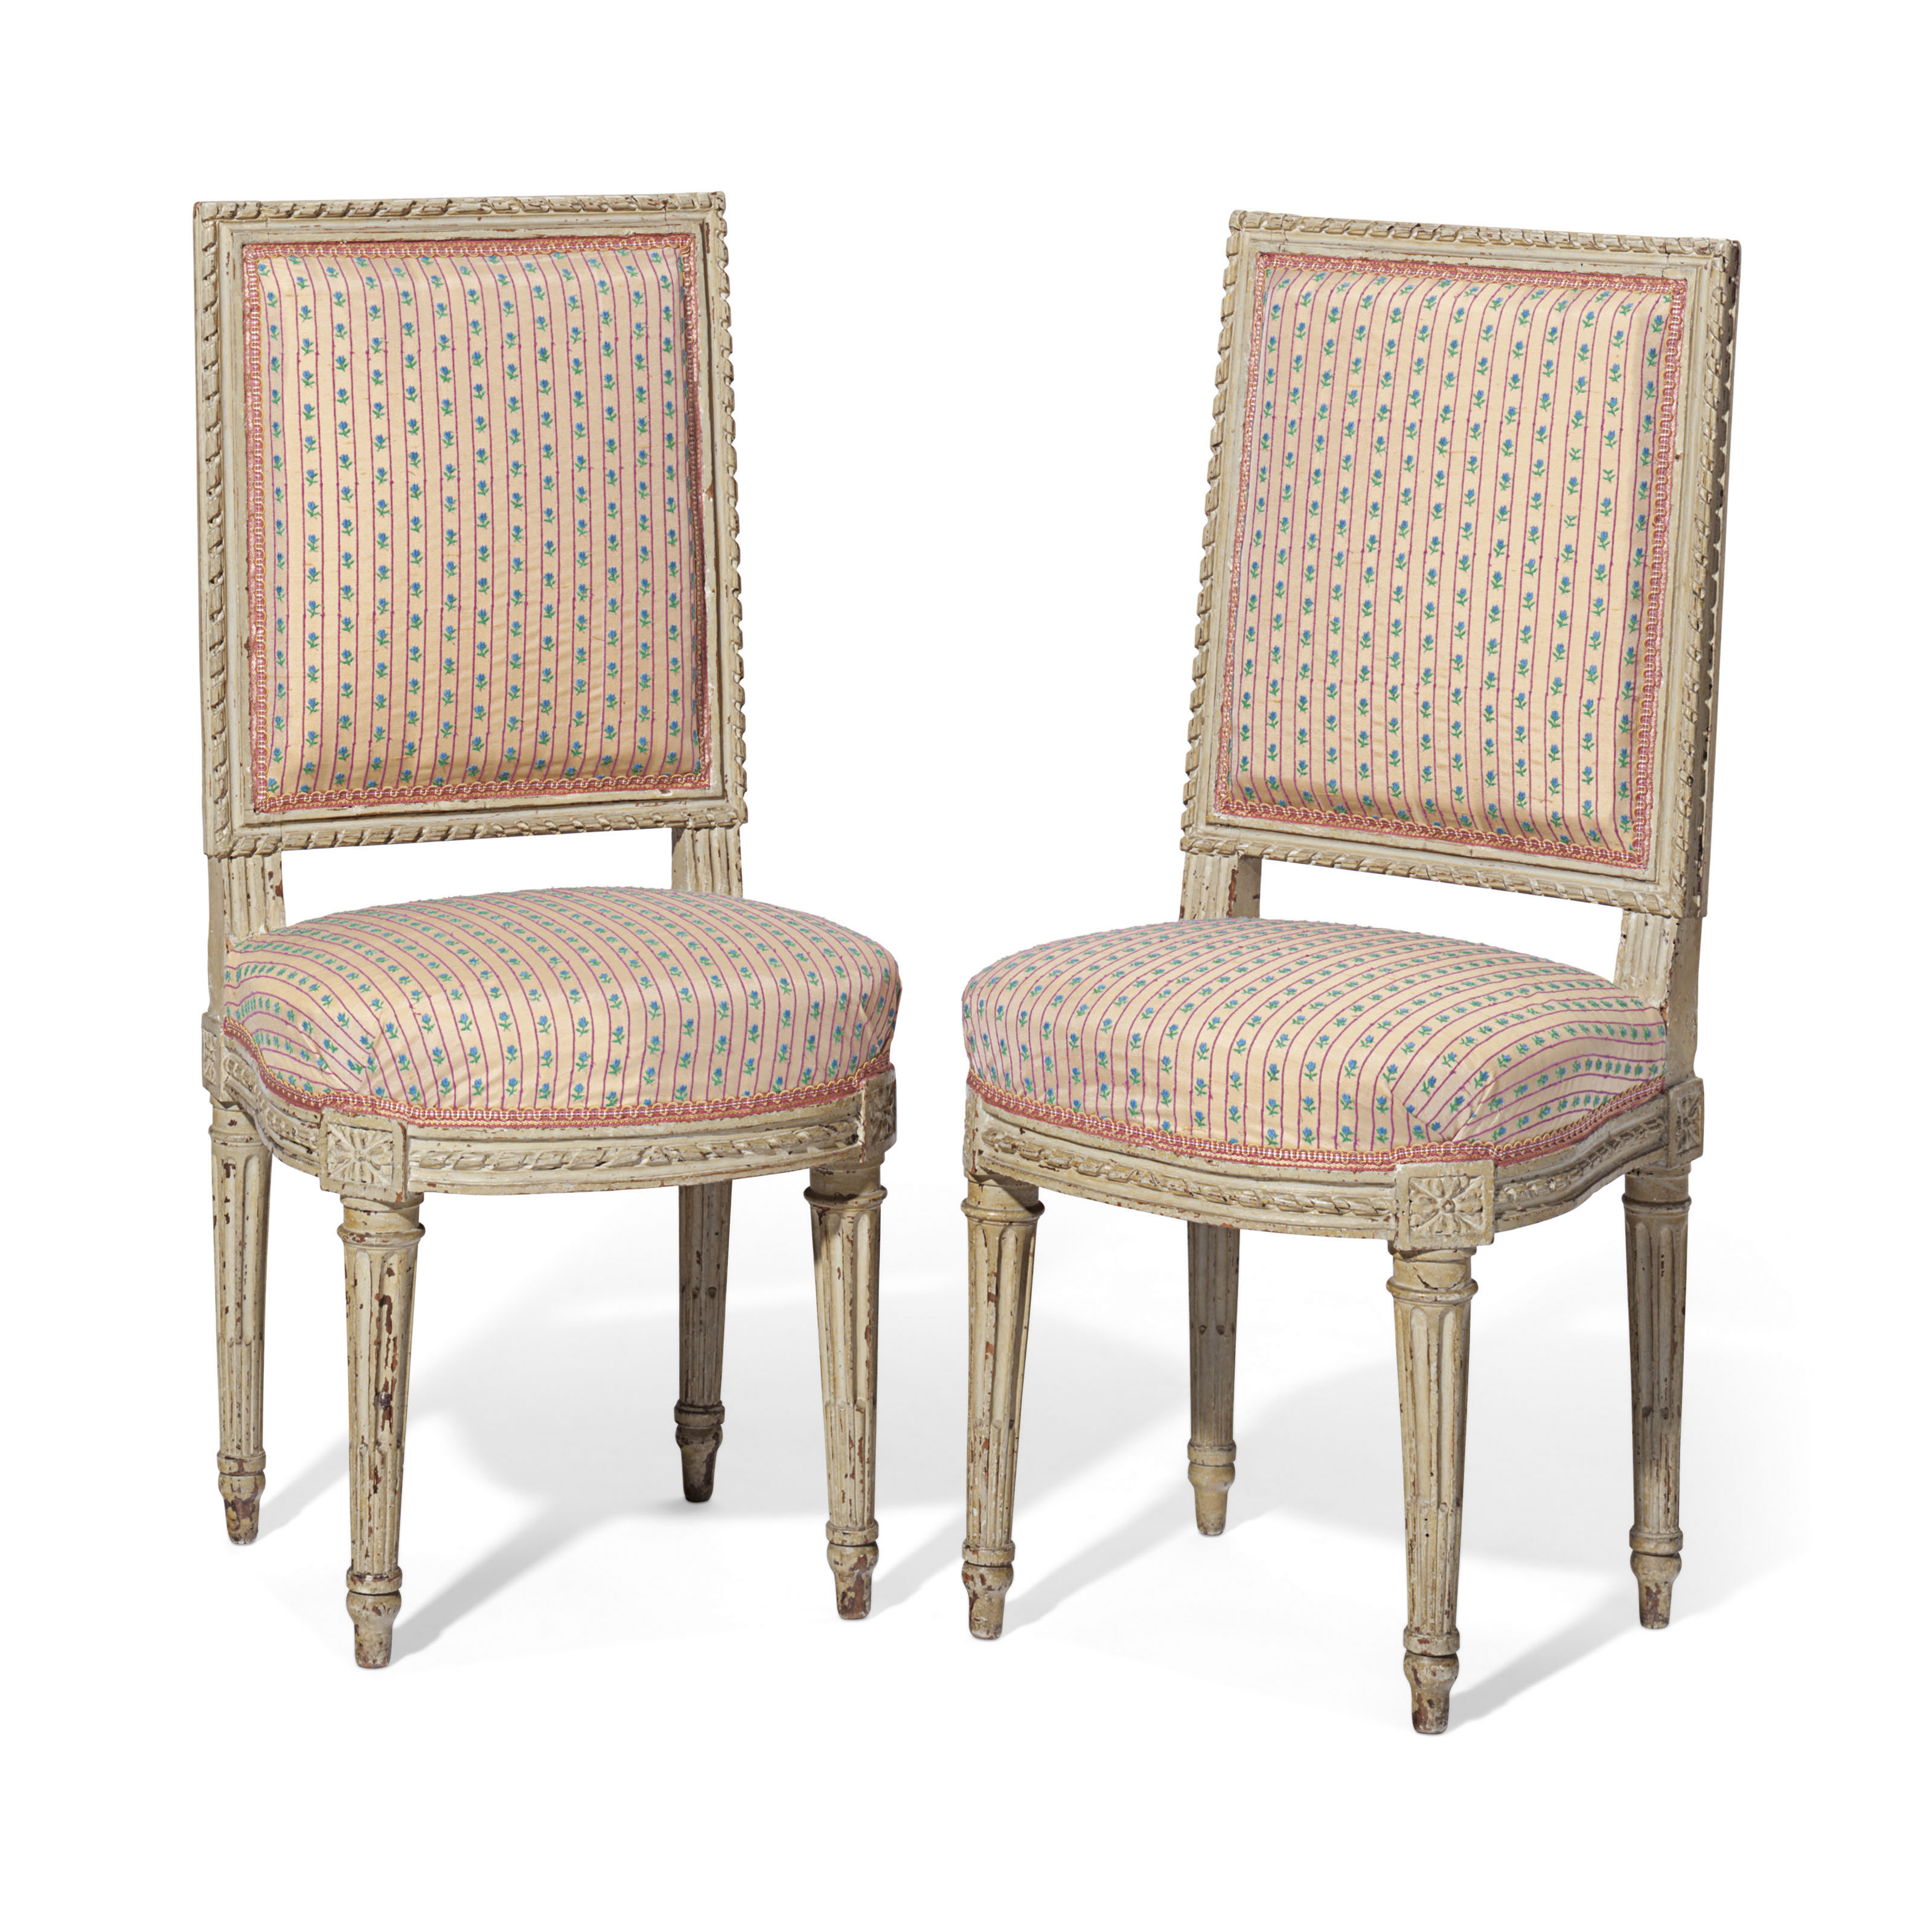 Chaises Elizabeth A Pair Of Louis Xvi Green Painted Chaises By Jean Baptiste